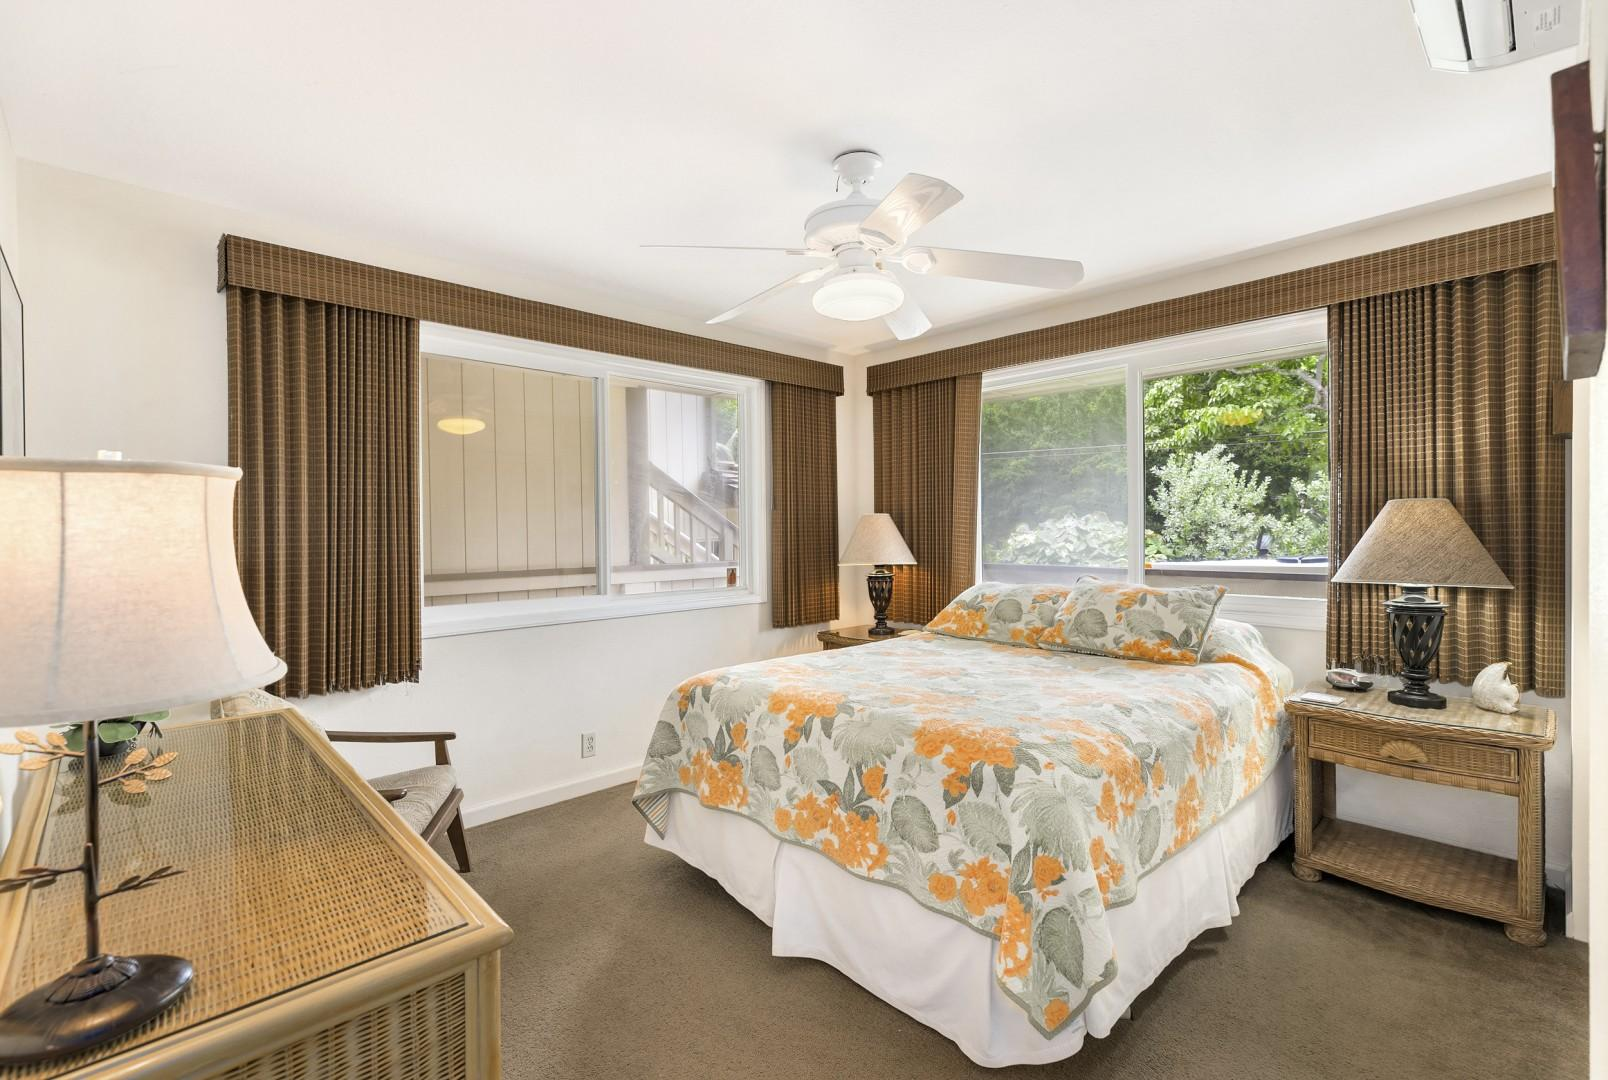 Well appointed guest bedroom with bamboo shades, dresser, split AC unit, and closet.